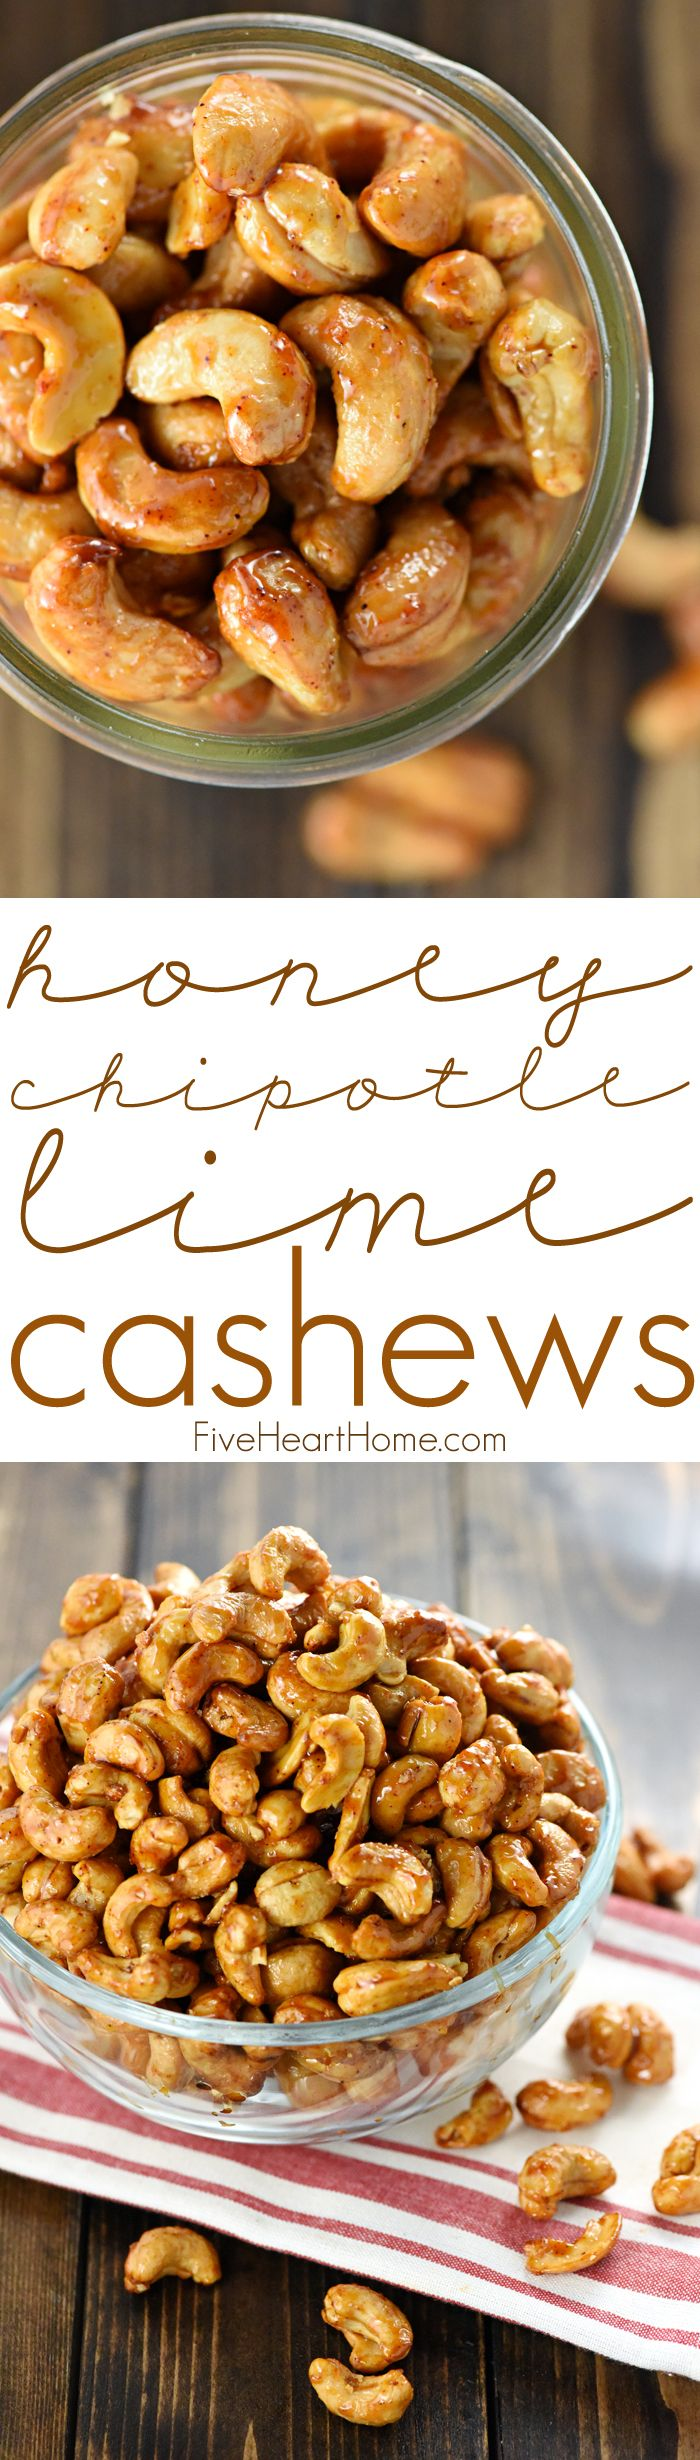 Honey Chipotle Lime Cashews ~ the perfect balance of sweet, spicy, and smoky, these glazed nuts are roasted to perfection and completely addictive, making them a fantastic gift or a tasty party snack! | FiveHeartHome.com